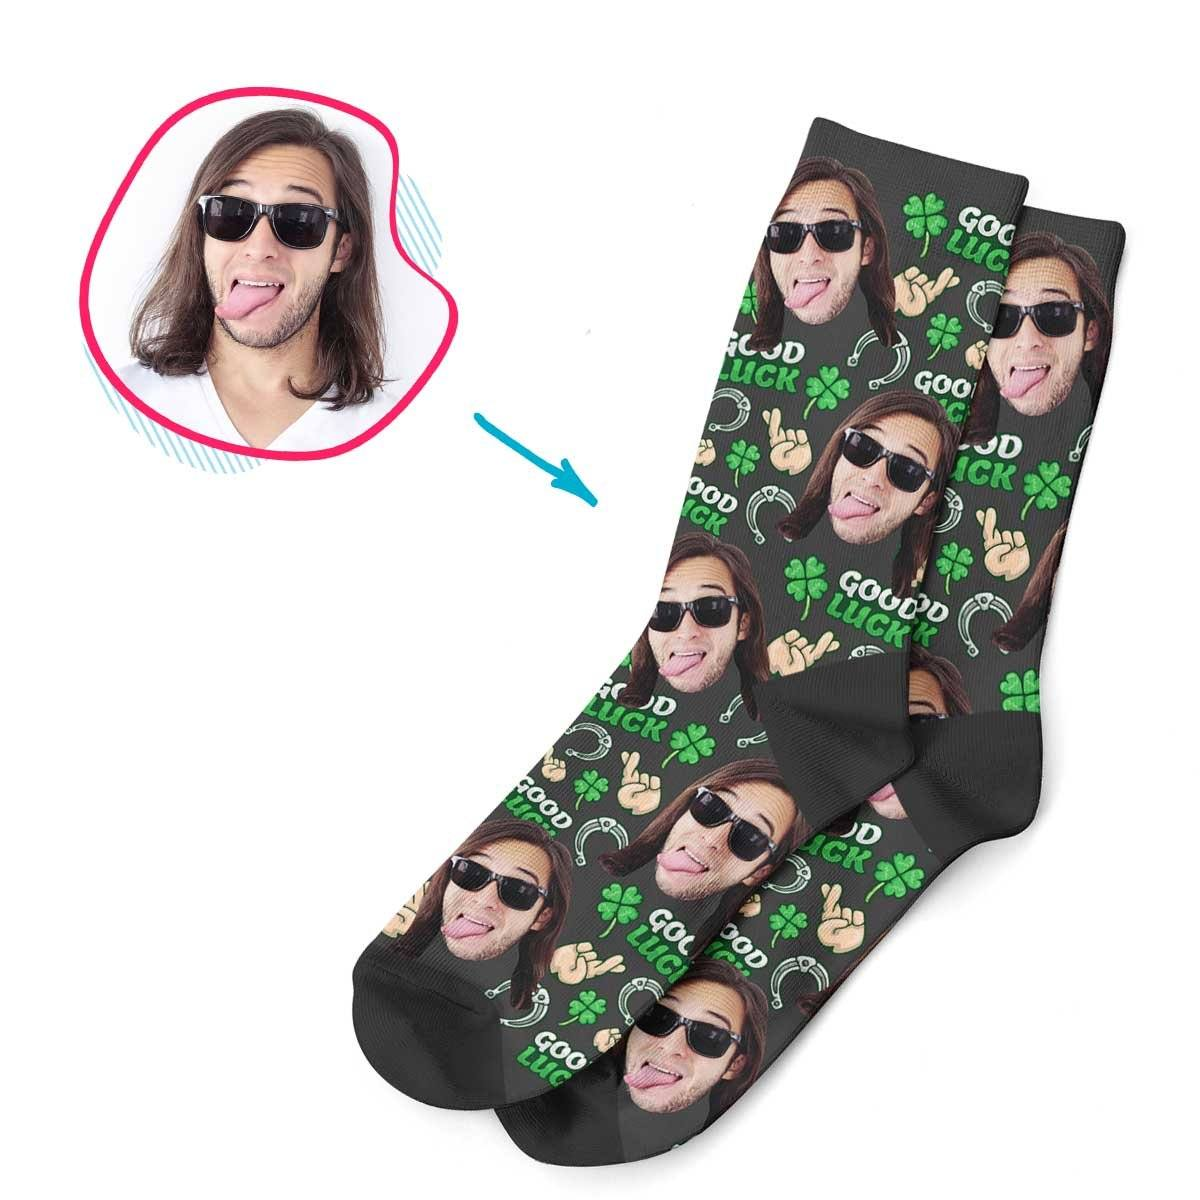 Dark Good Luck personalized socks with photo of face printed on them